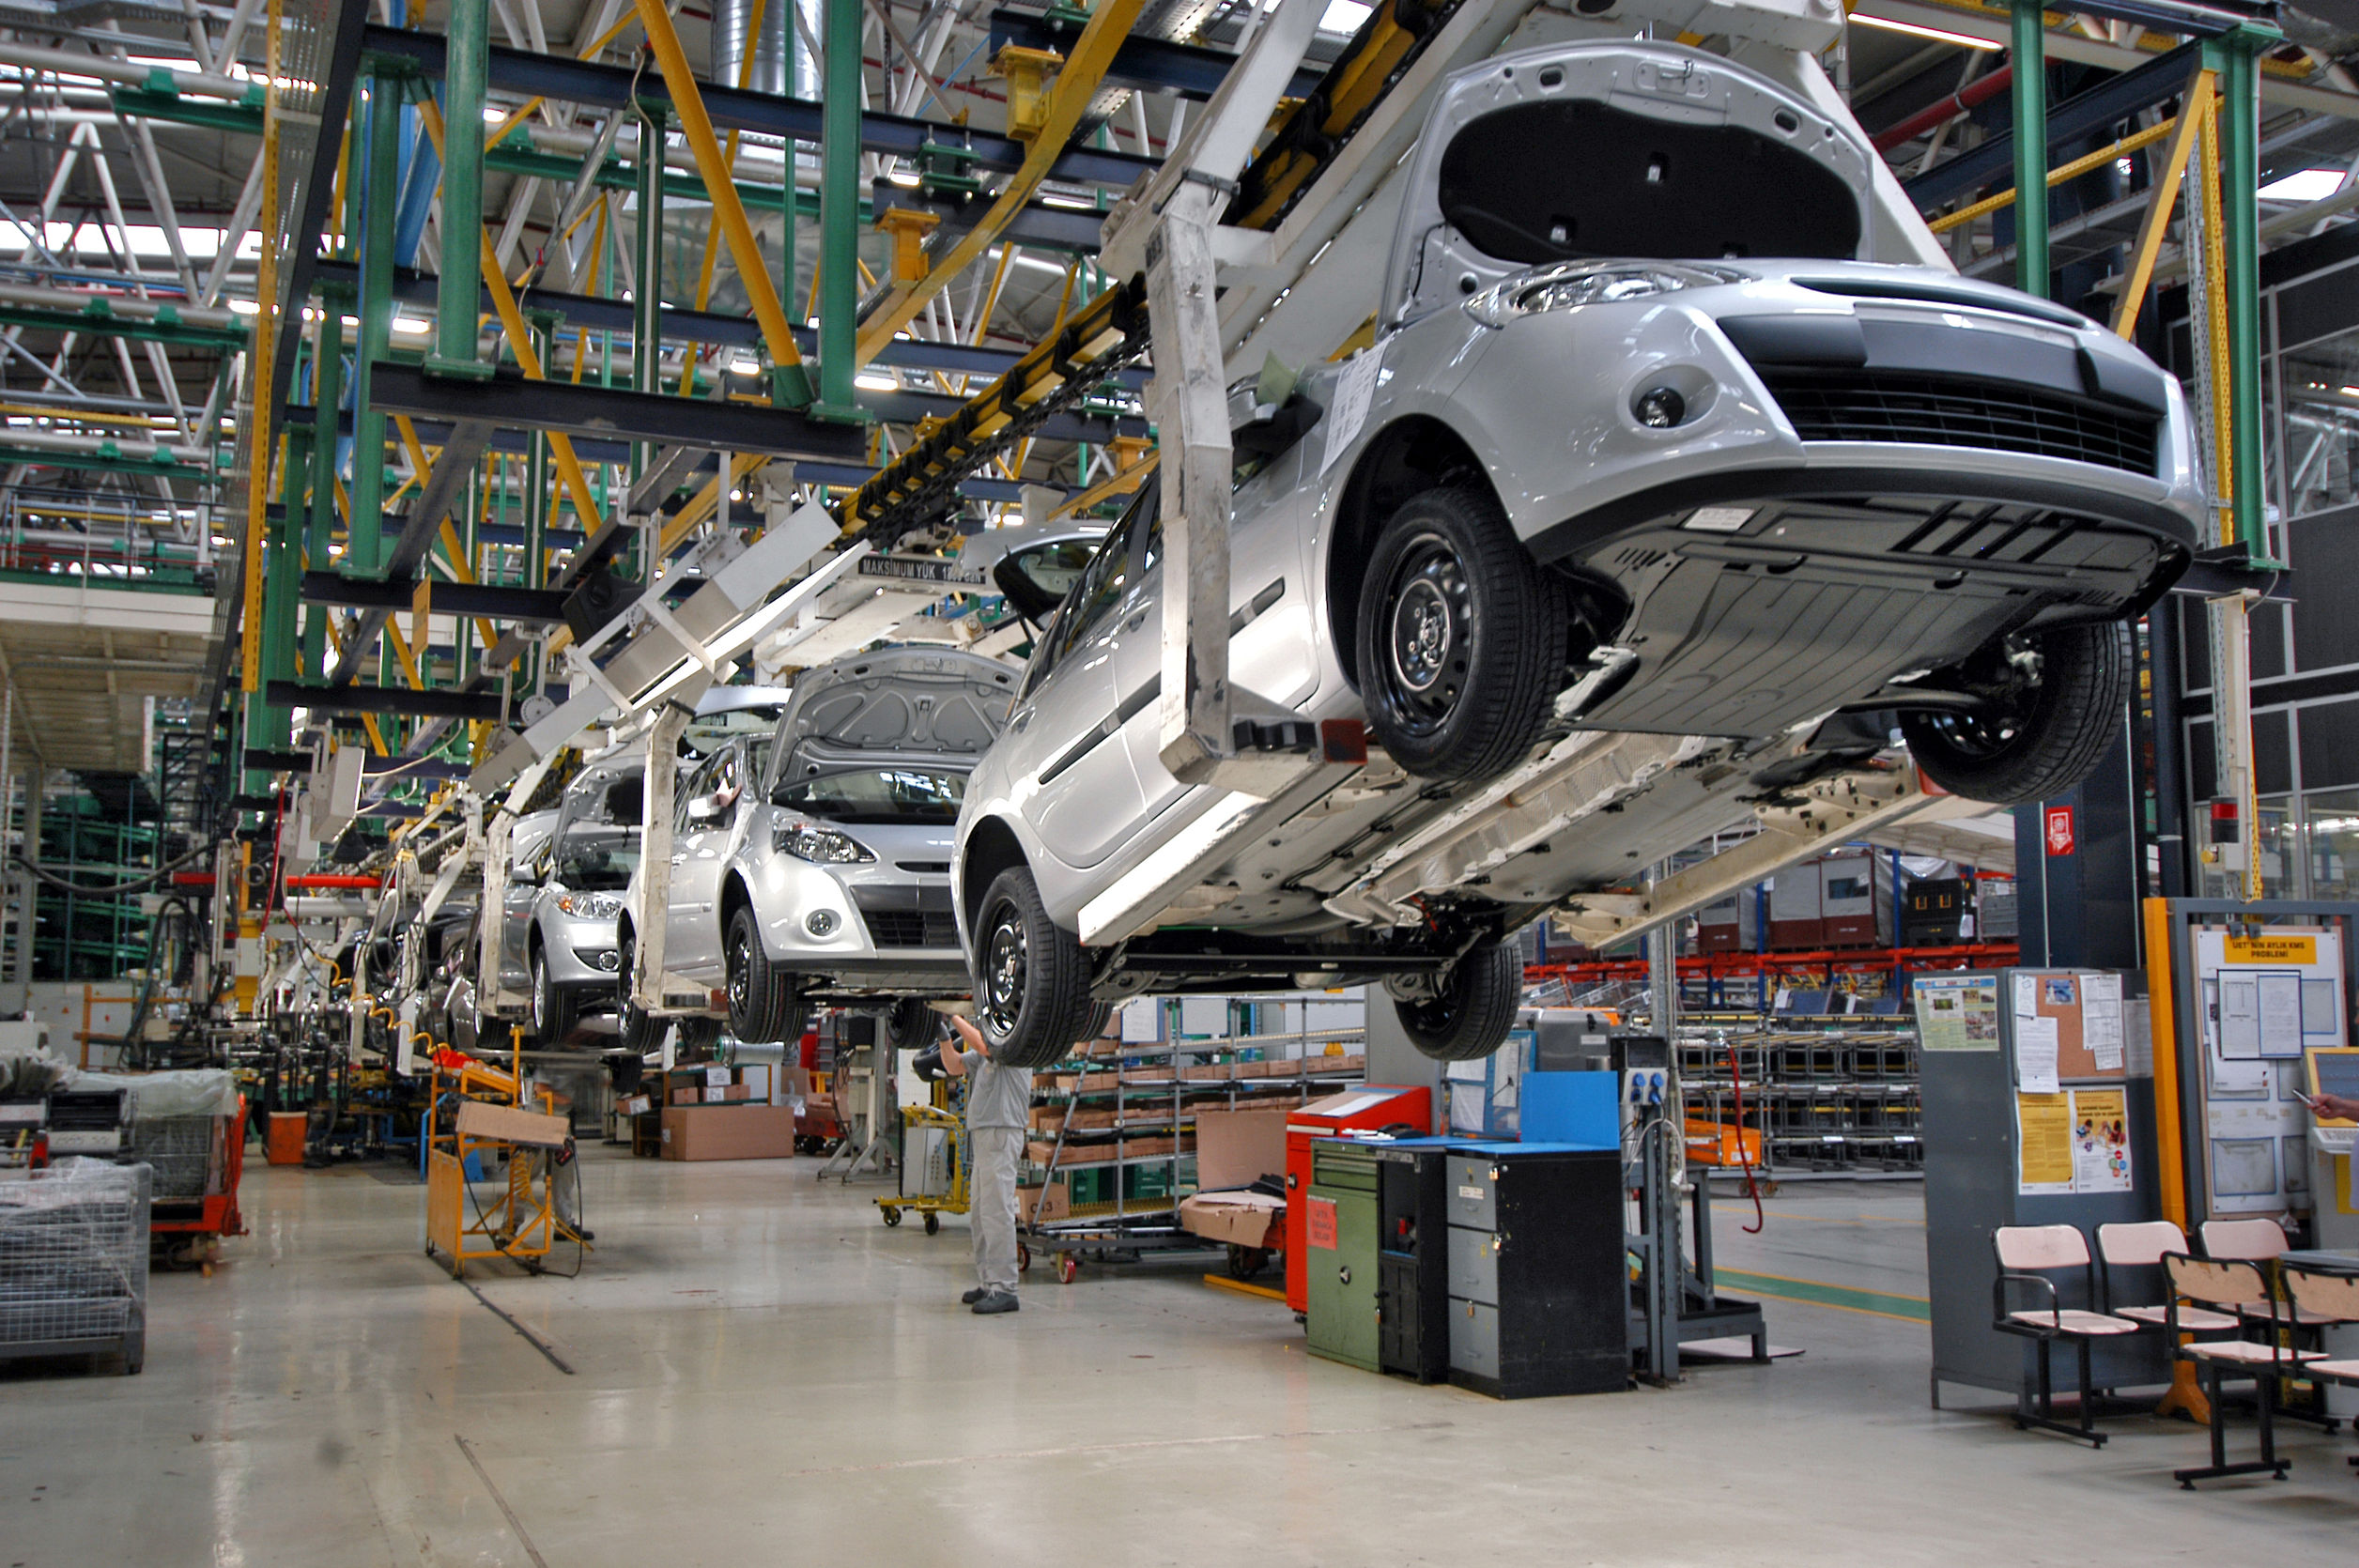 Trade Body Warns 1 in 6 UK Car Industry Jobs Could Be Lost